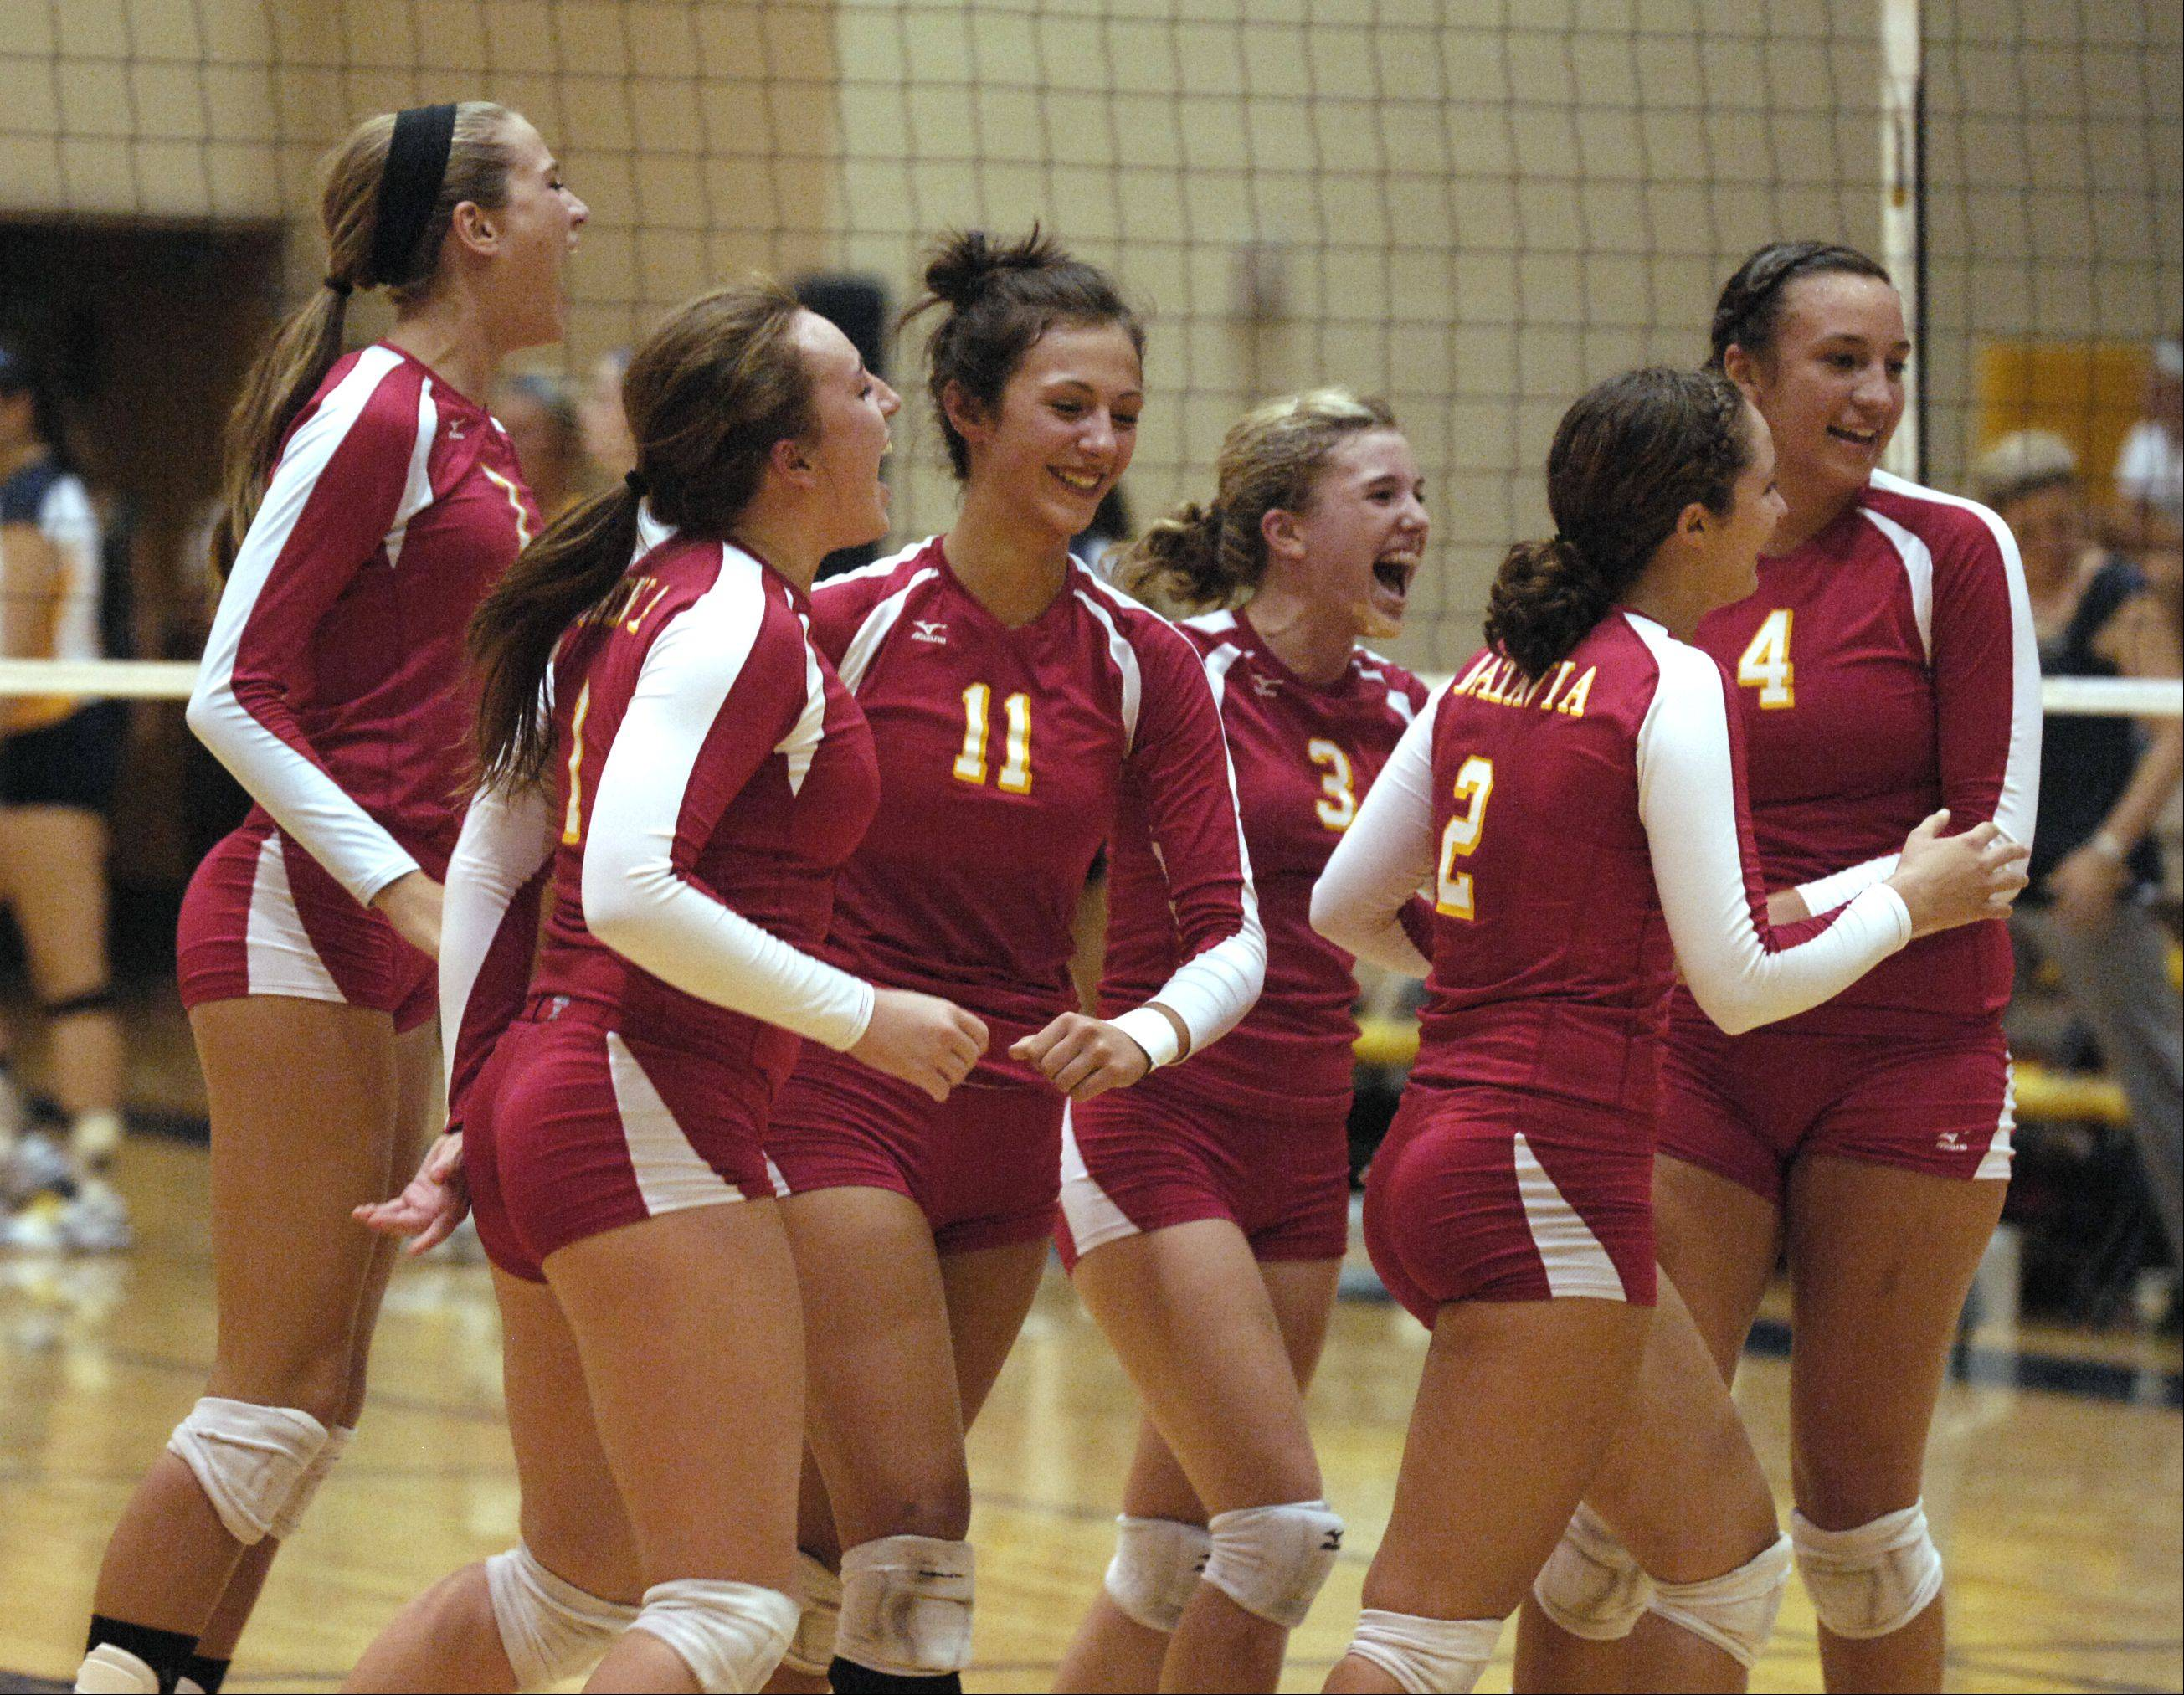 Batavia celebrates defeating Neuqua Valley 2-0 during girls varsity volleyball in Naperville.